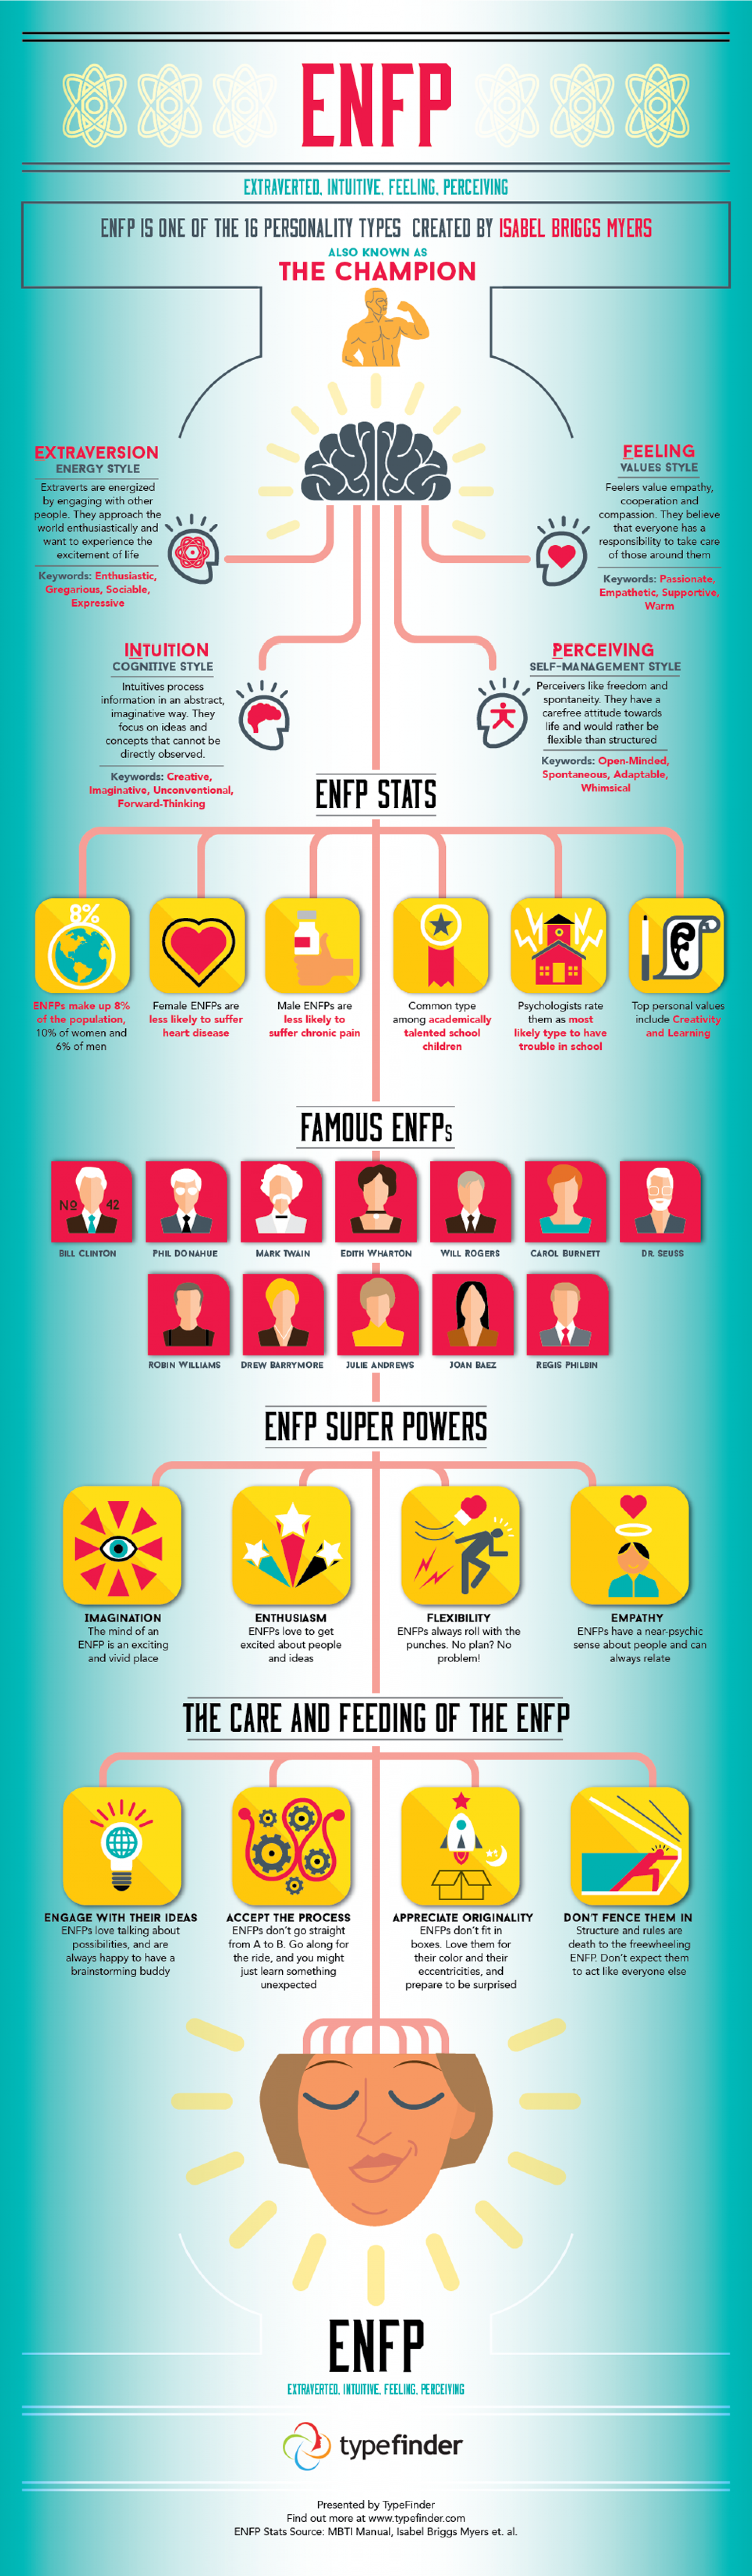 All About the ENFP Personality Type Infographic